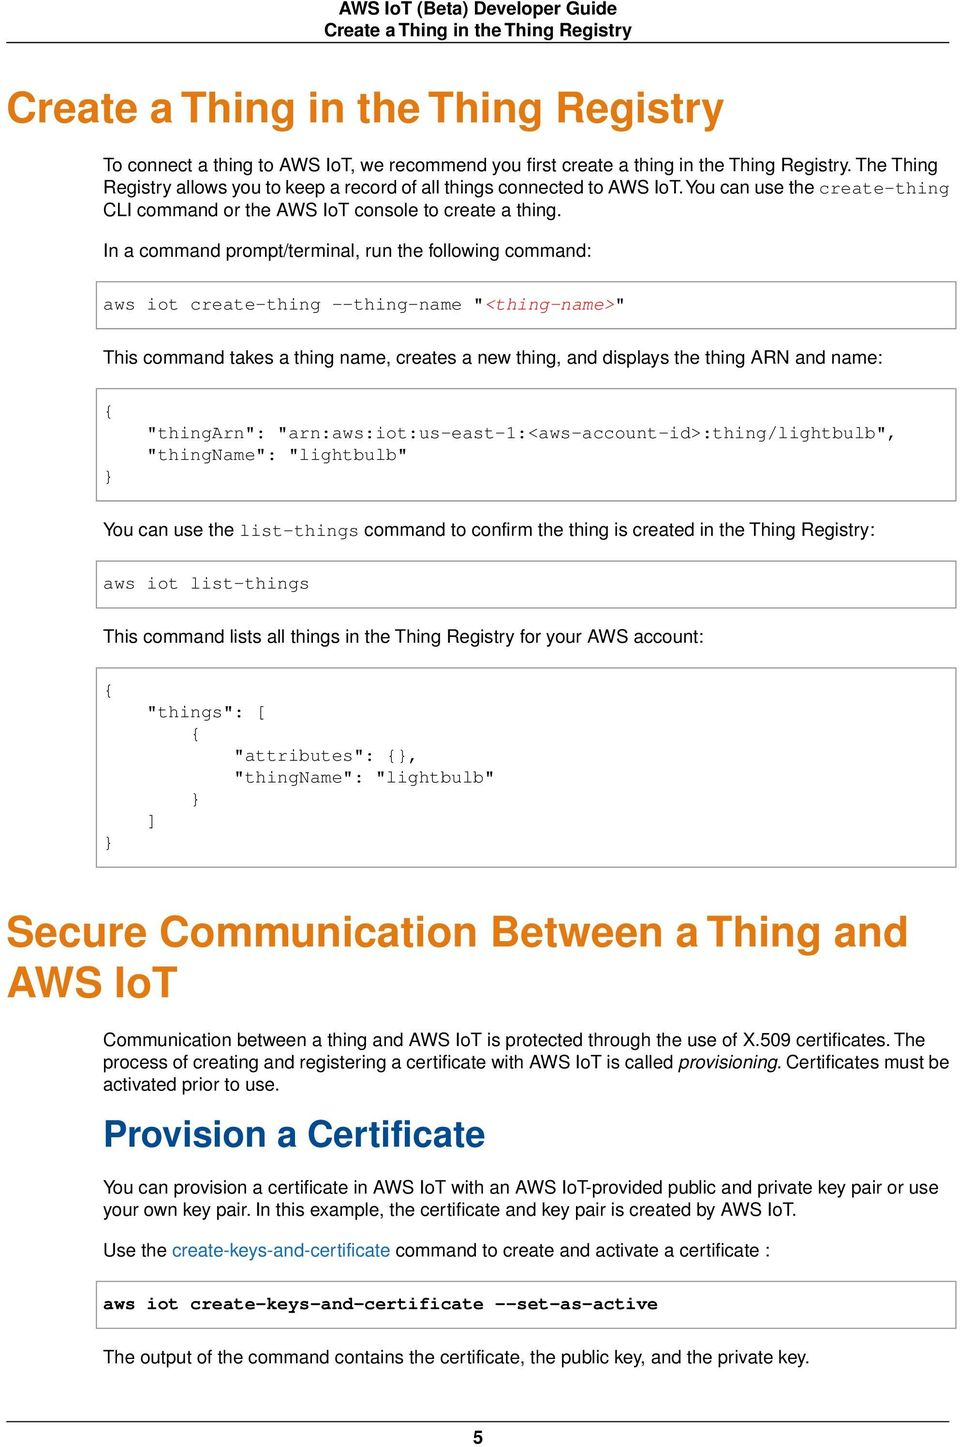 AWS IoT (Beta) Developer Guide - PDF